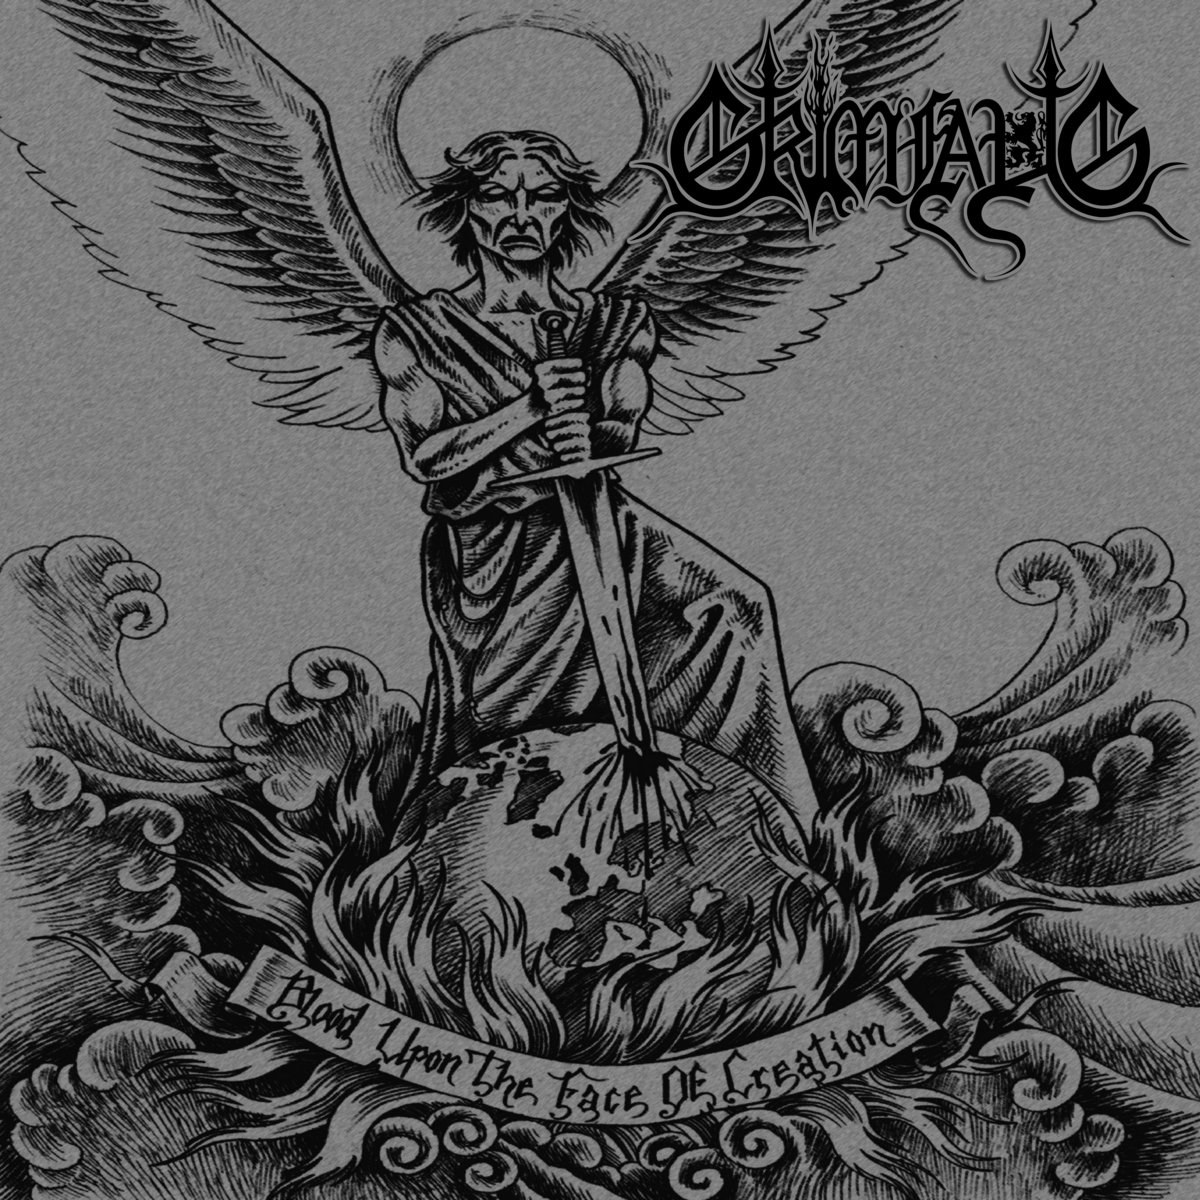 Review for Grimfaug - Blood Upon the Face of Creation